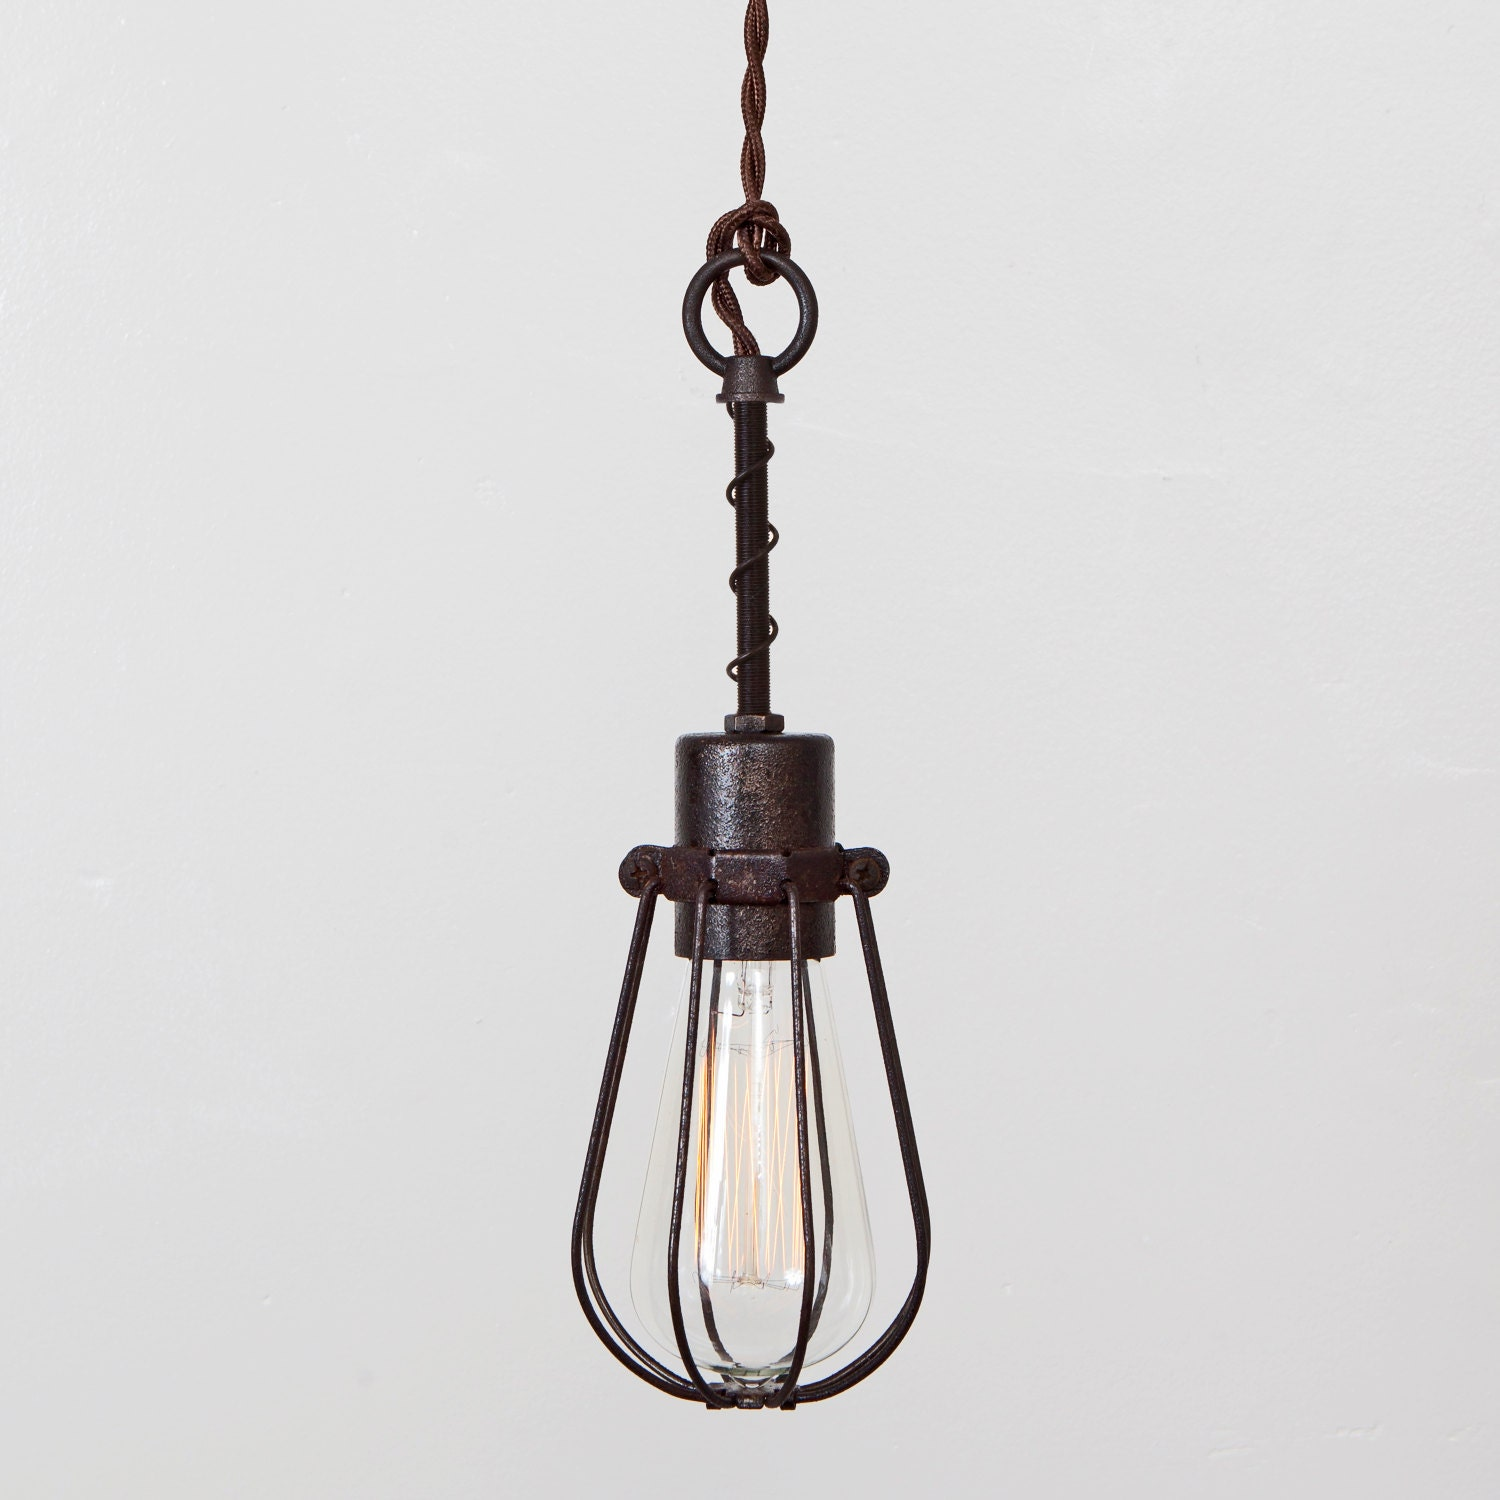 oval bulb cage light pendant light industrial hanging light